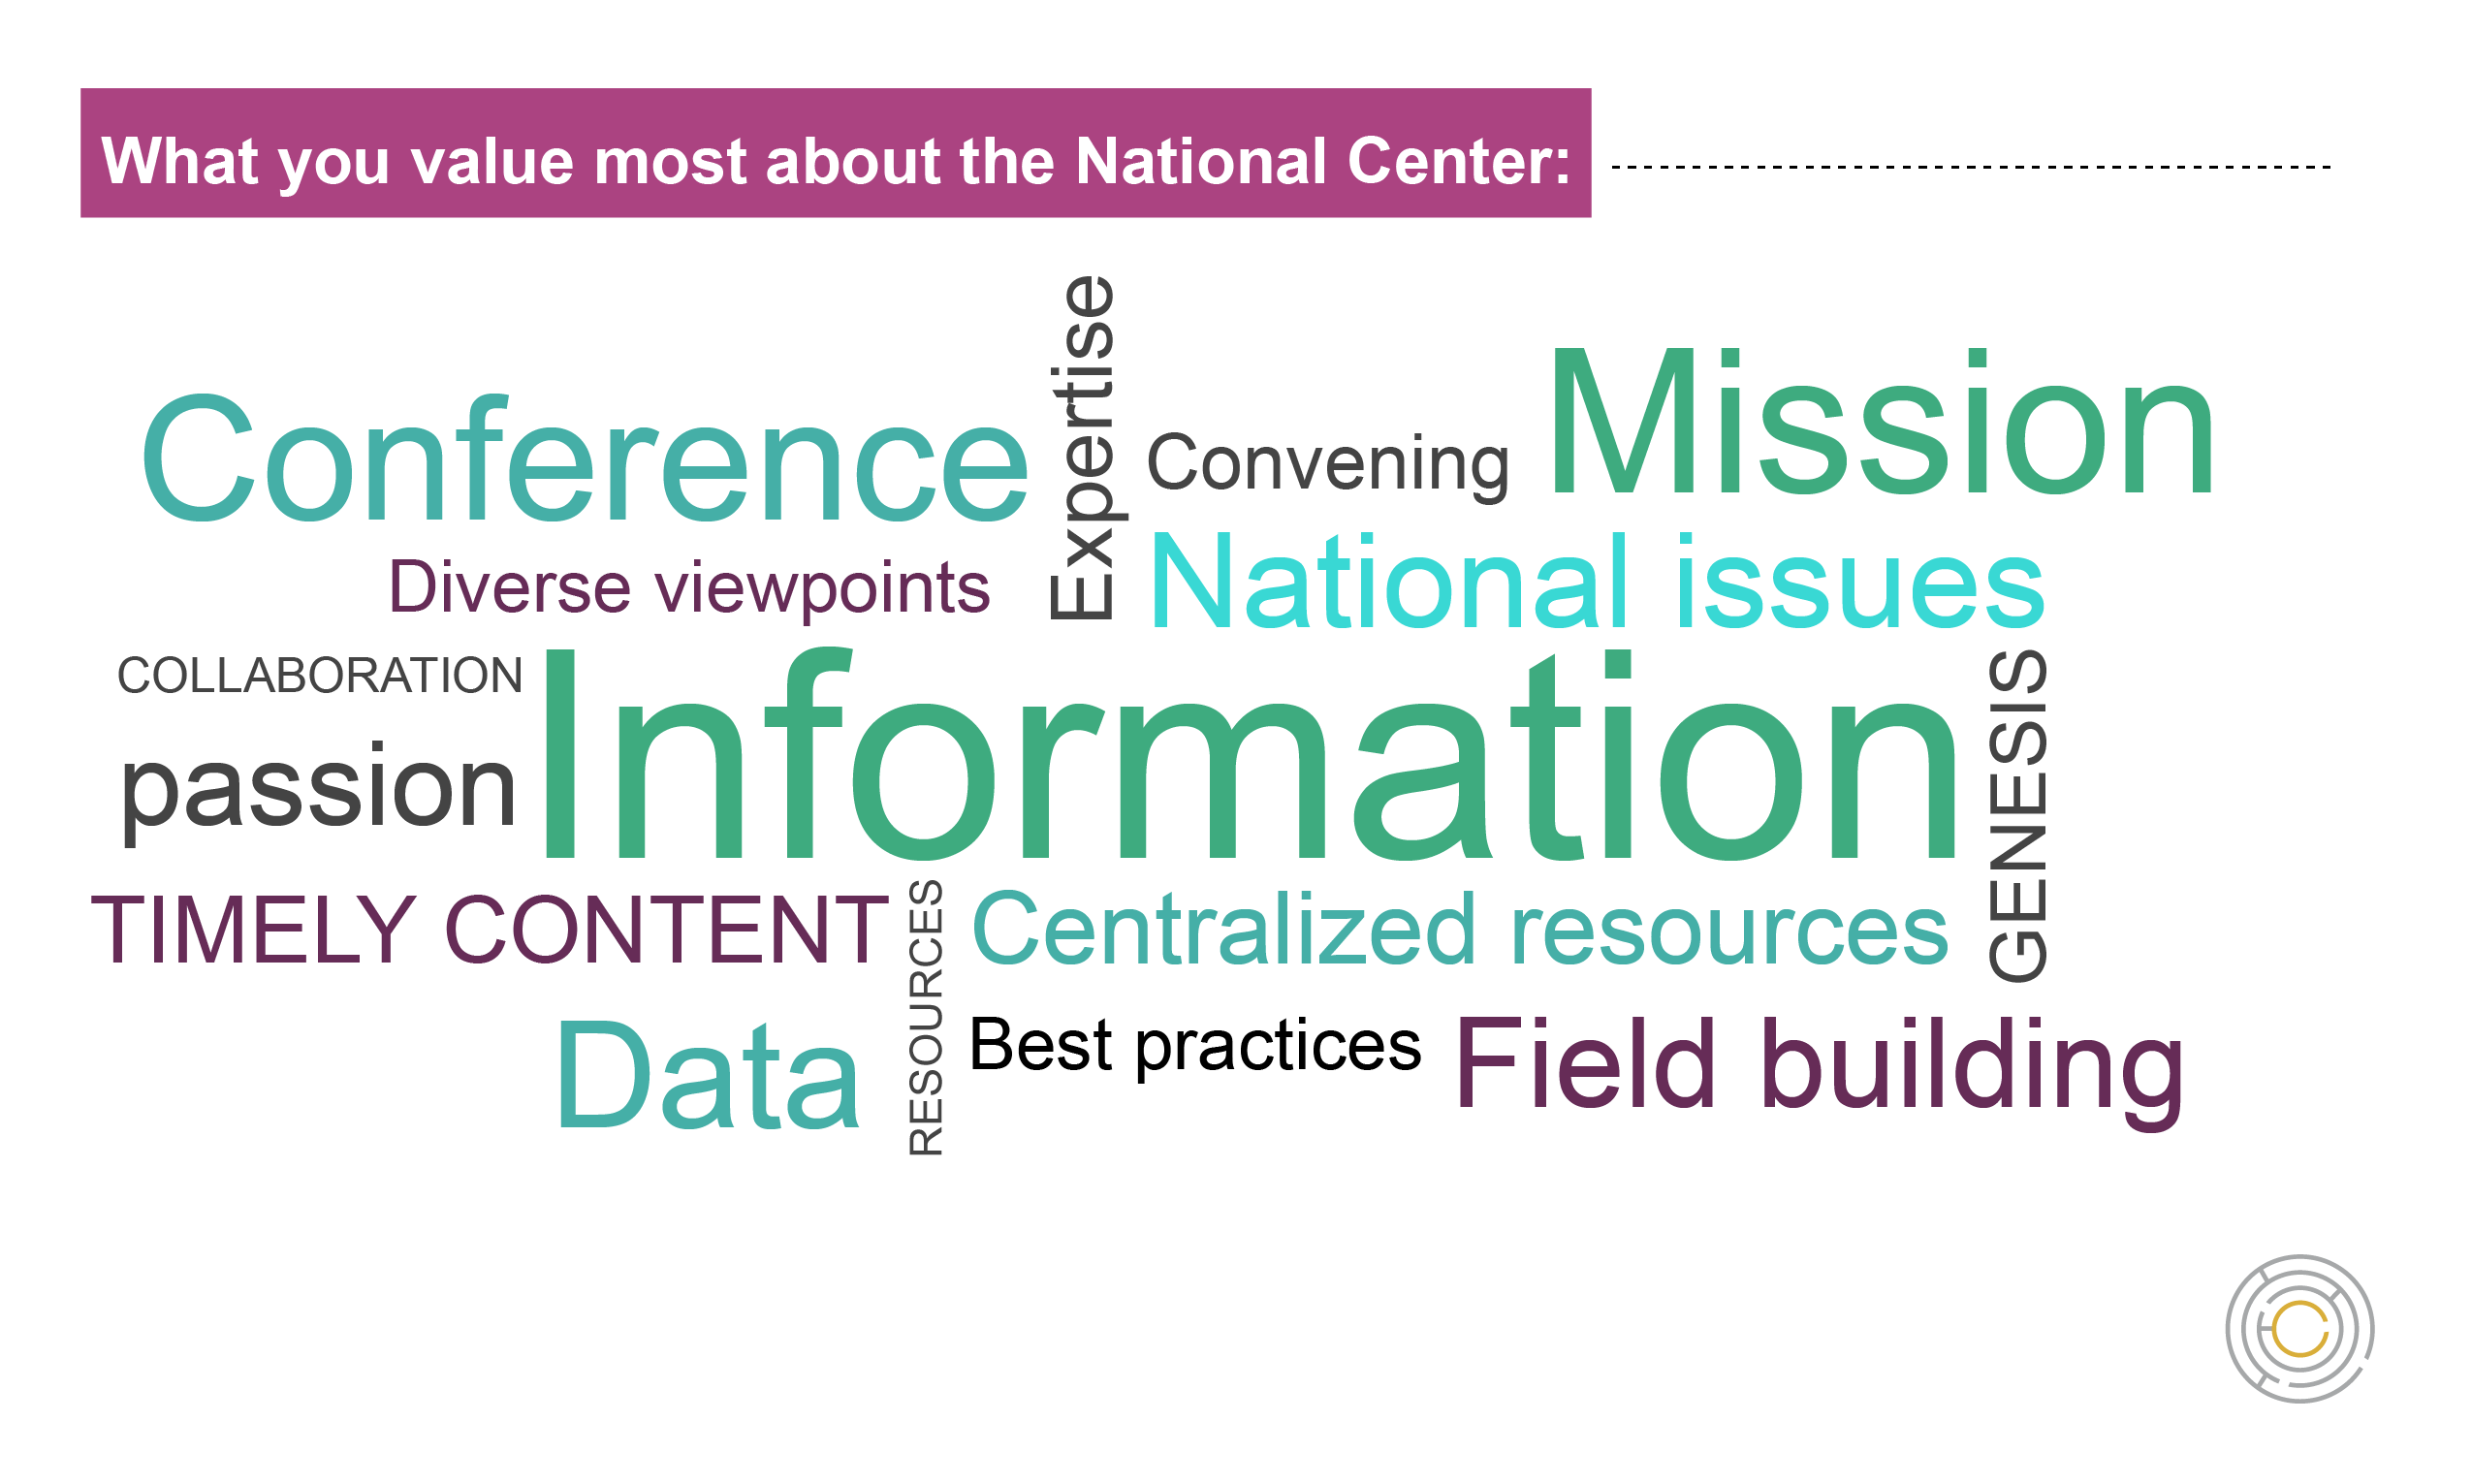 Word cloud showing what respondents value most about the National Center. The biggest words are Information, Mission, and Conference